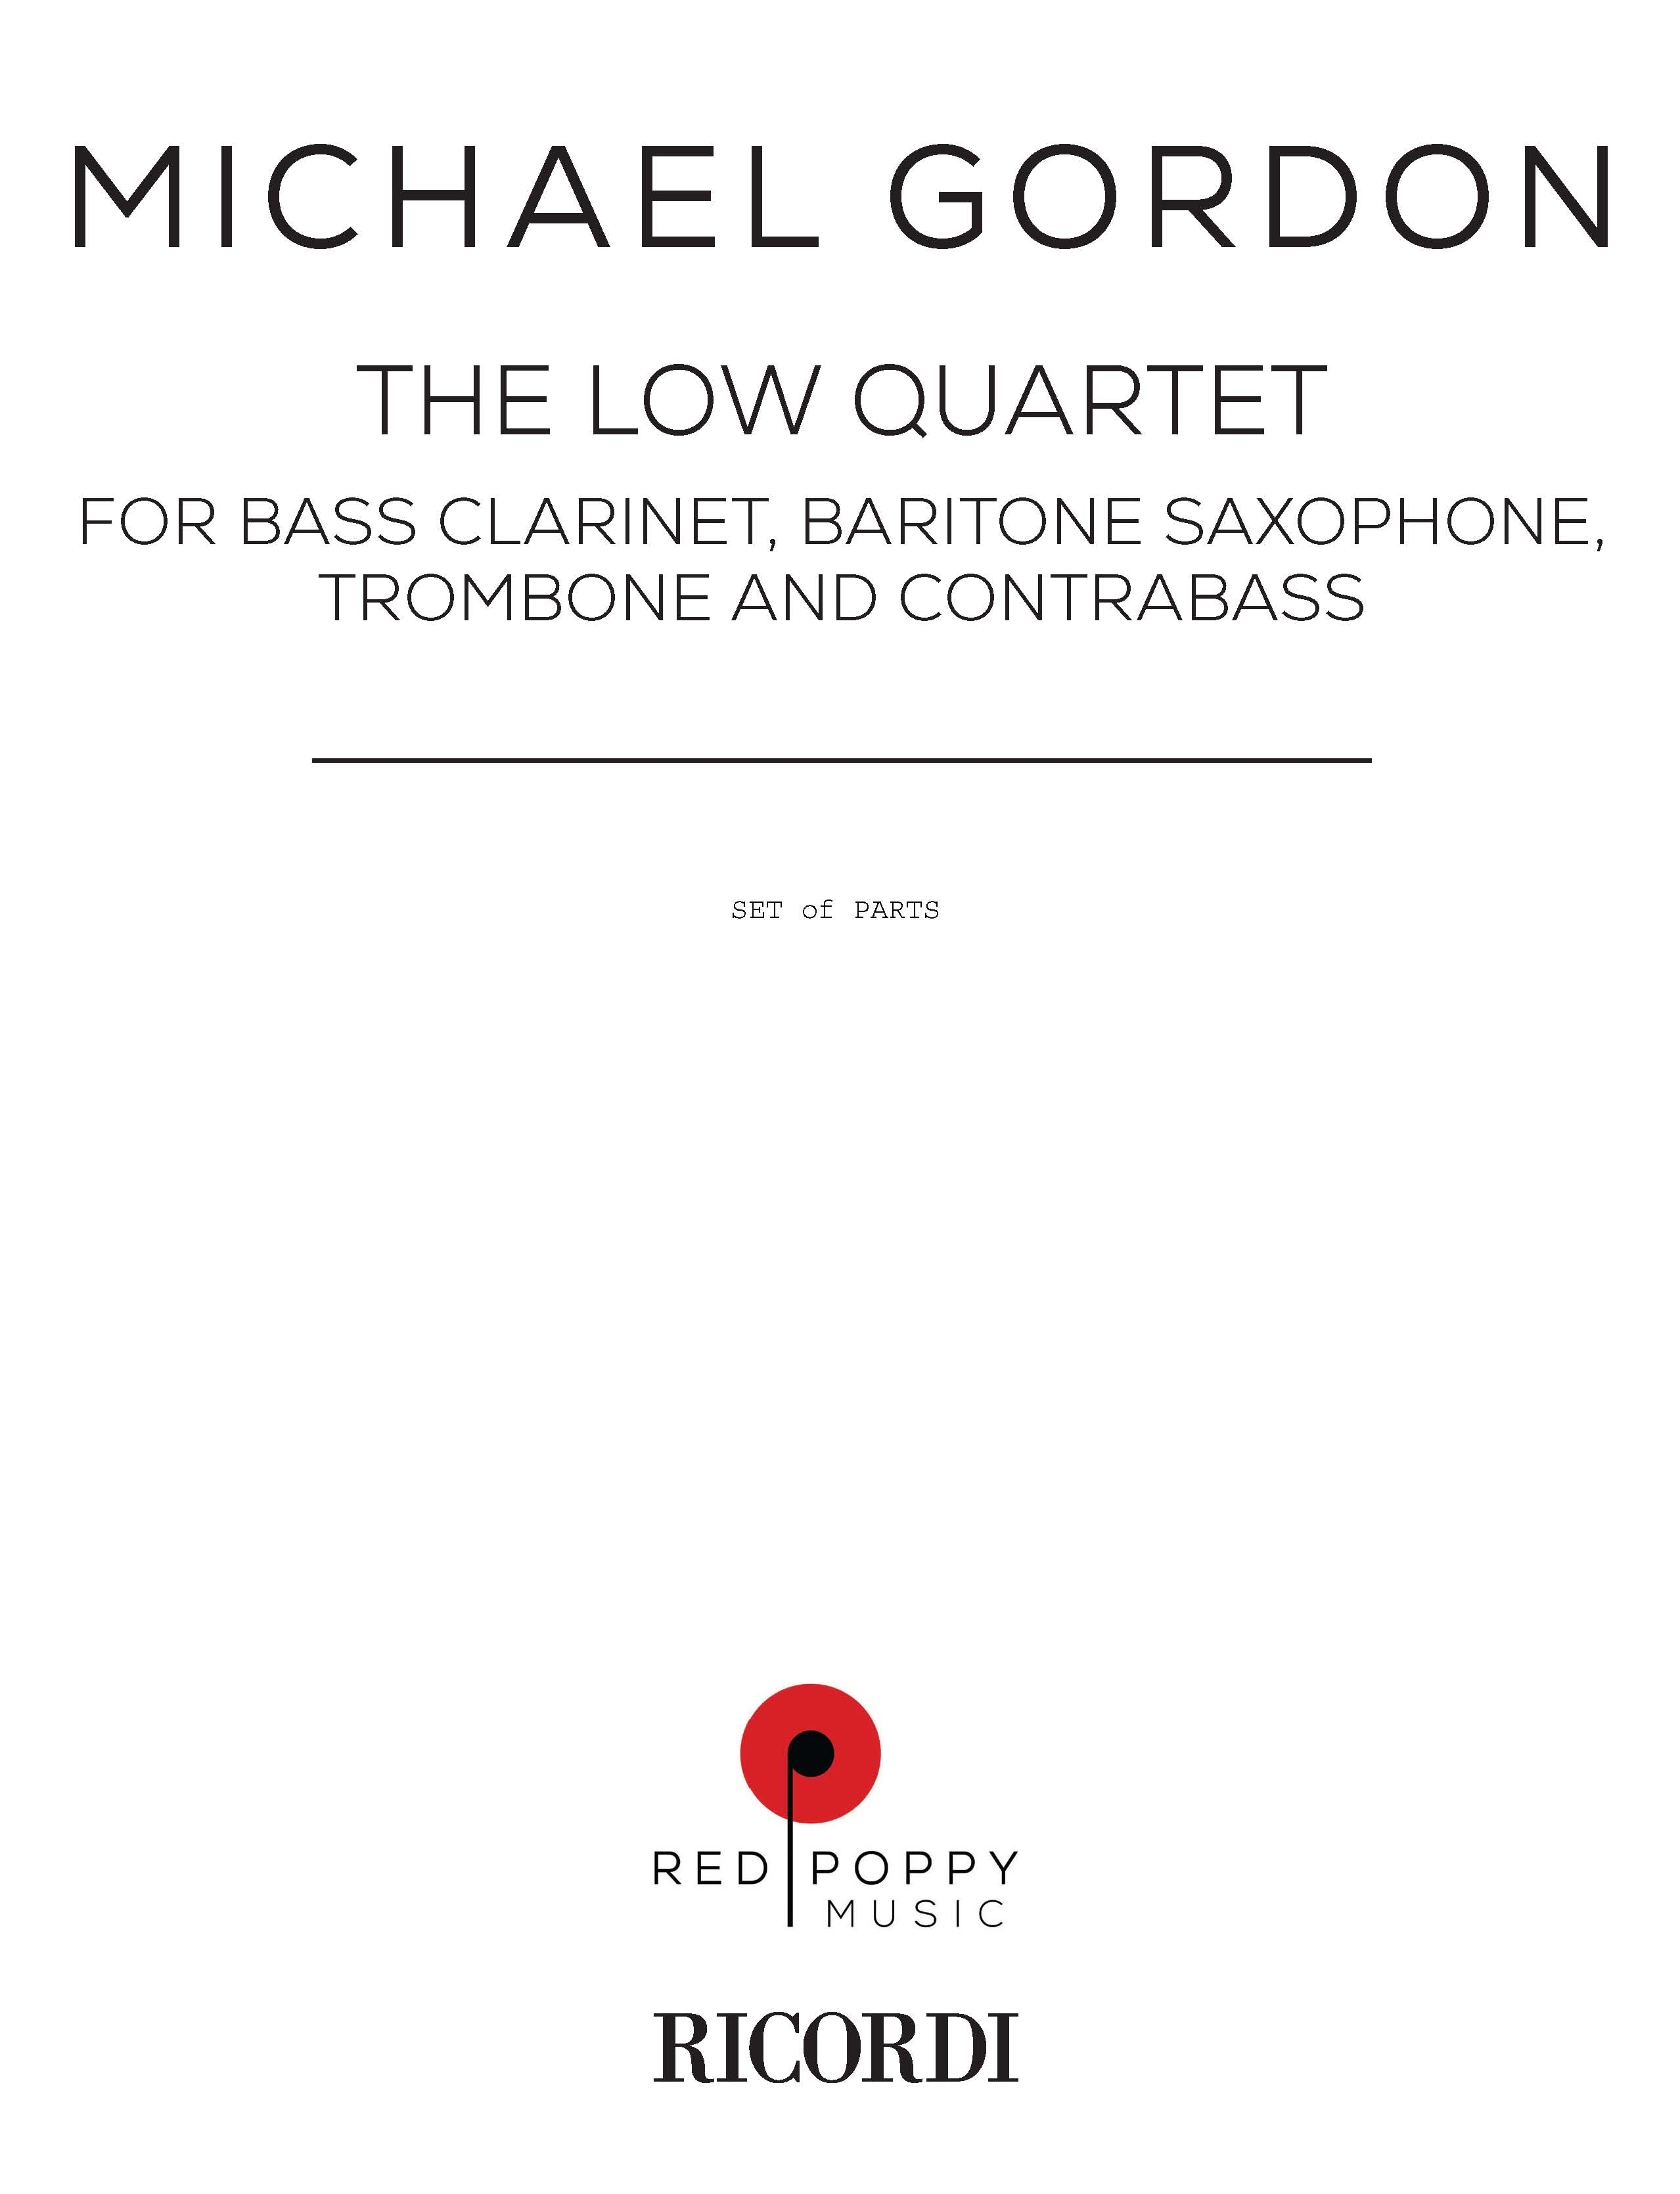 Low quartet, The for Bass Clarinet, Baritone Saxophone, Trombone & Contrabass